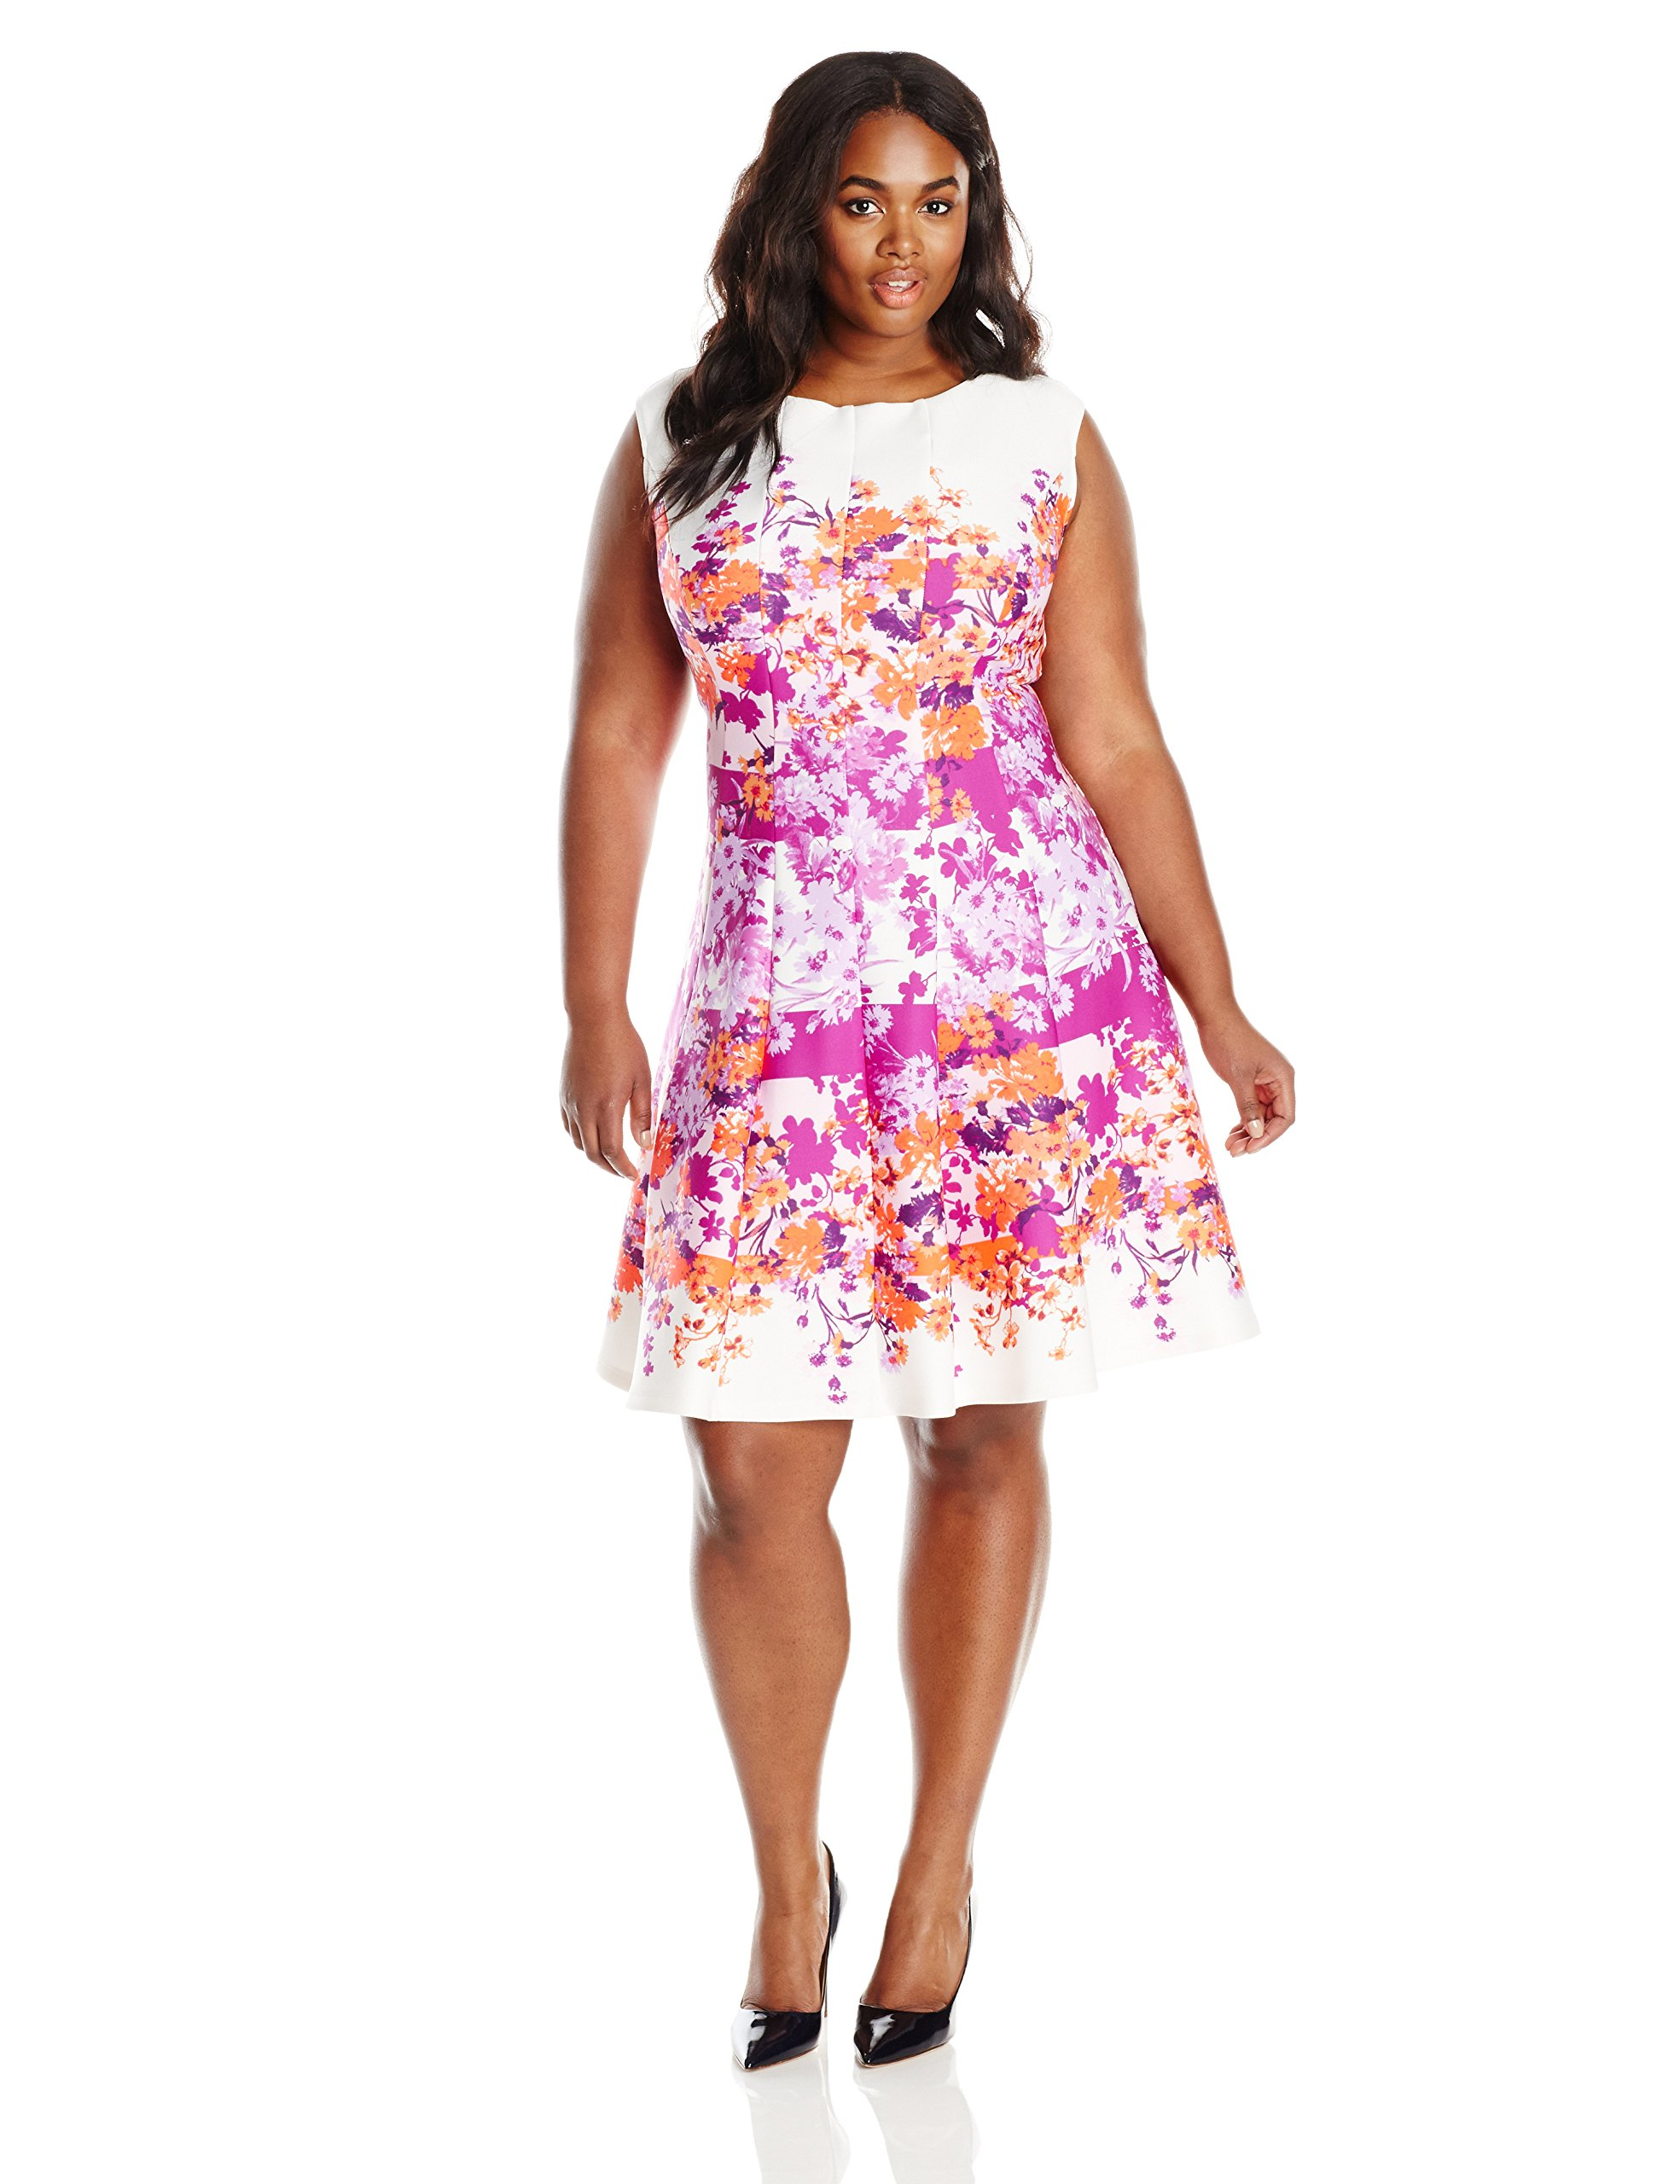 21024042b81 Spring 2015 Plus Size Dresses  Top 20 Florals - Baby to Boomer Lifestyle